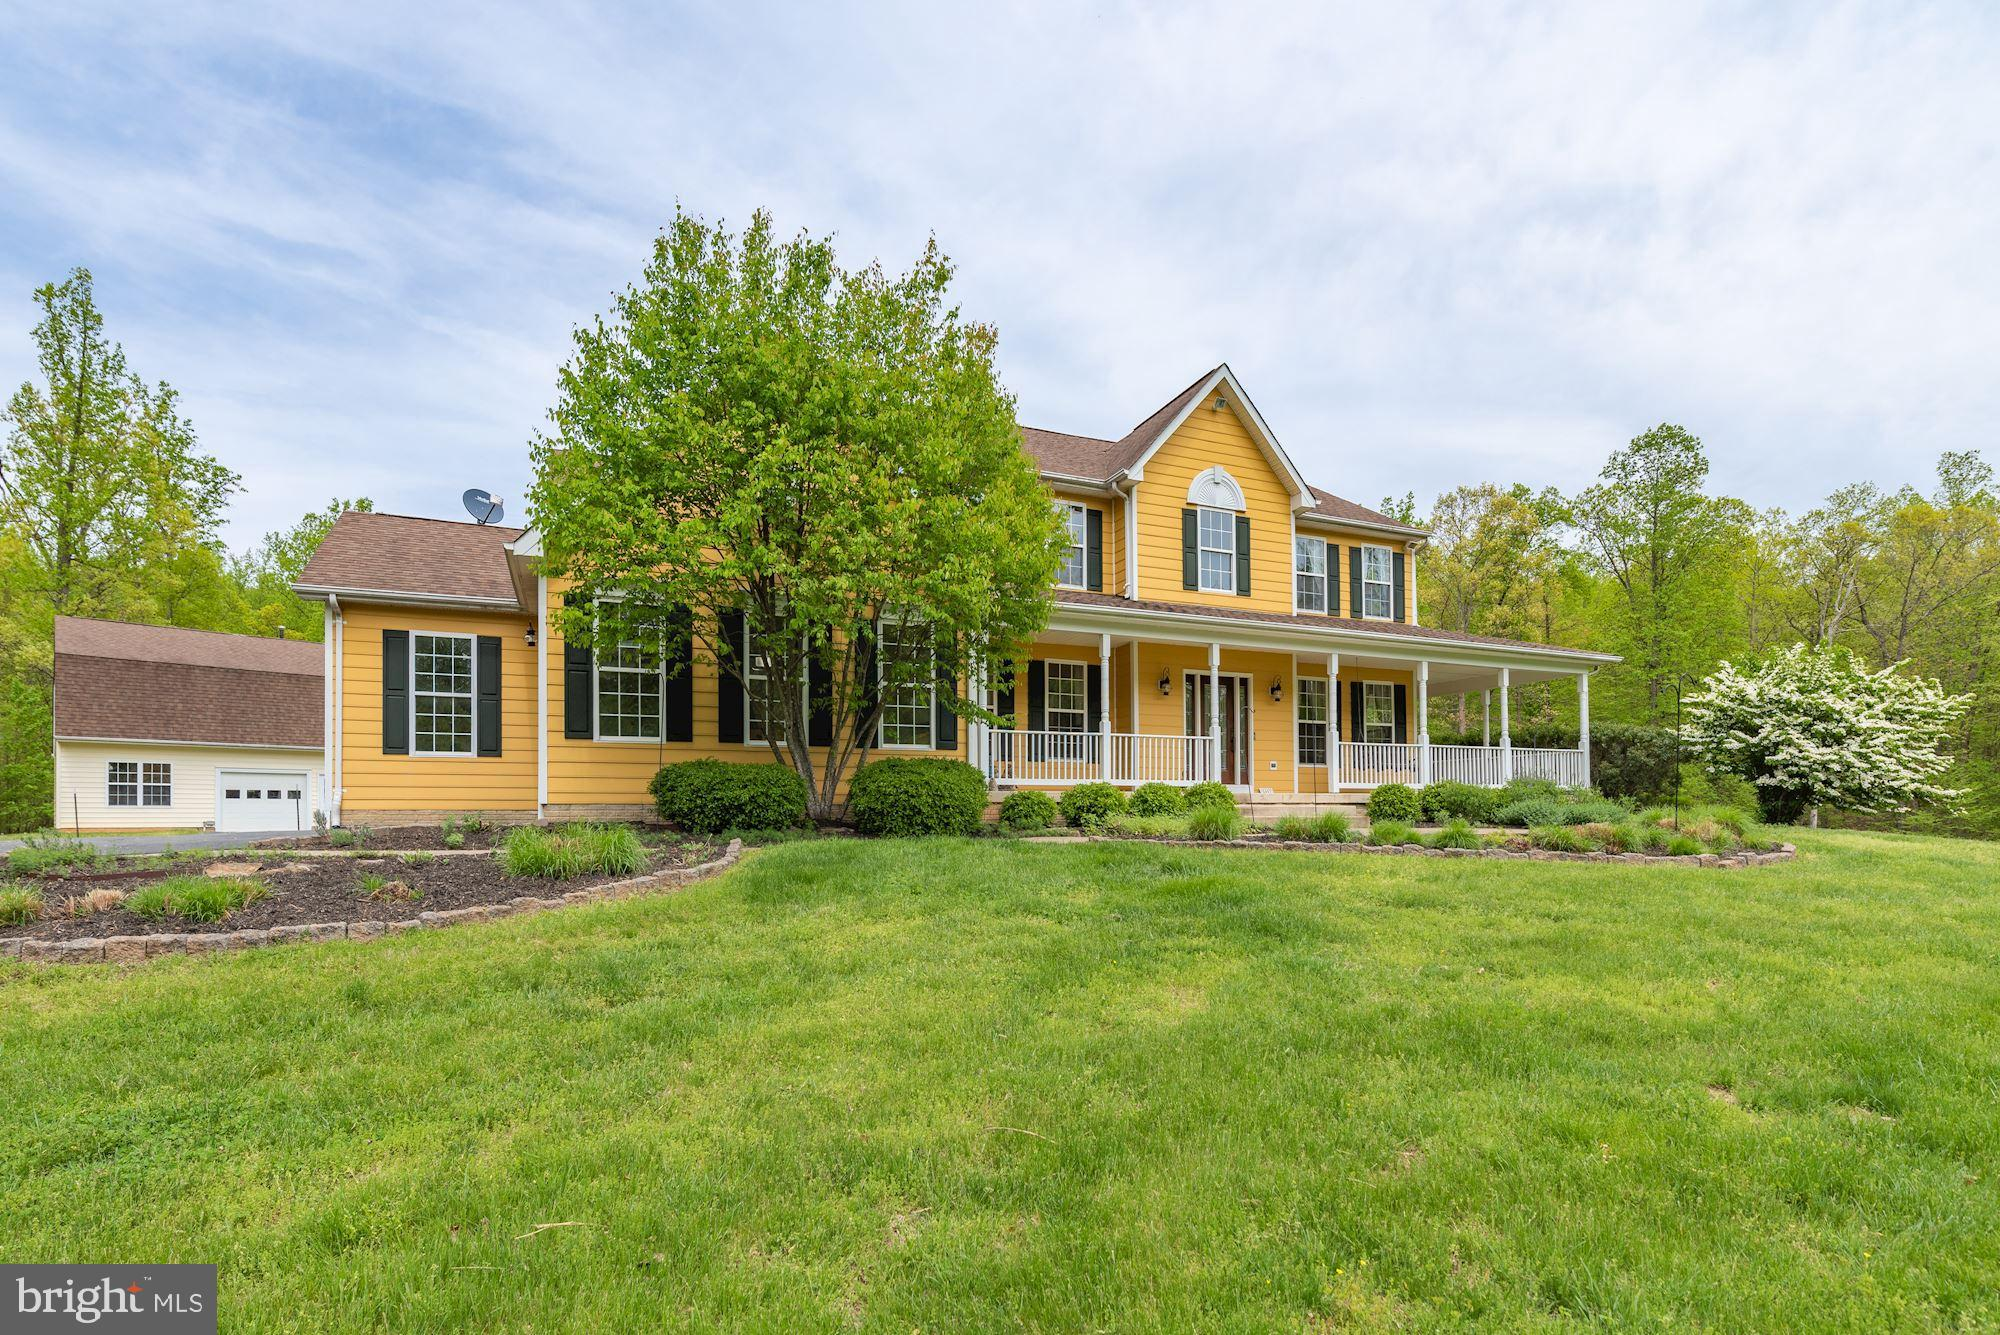 5457 N GREENSTONE LANE N, MARSHALL, VA 20115